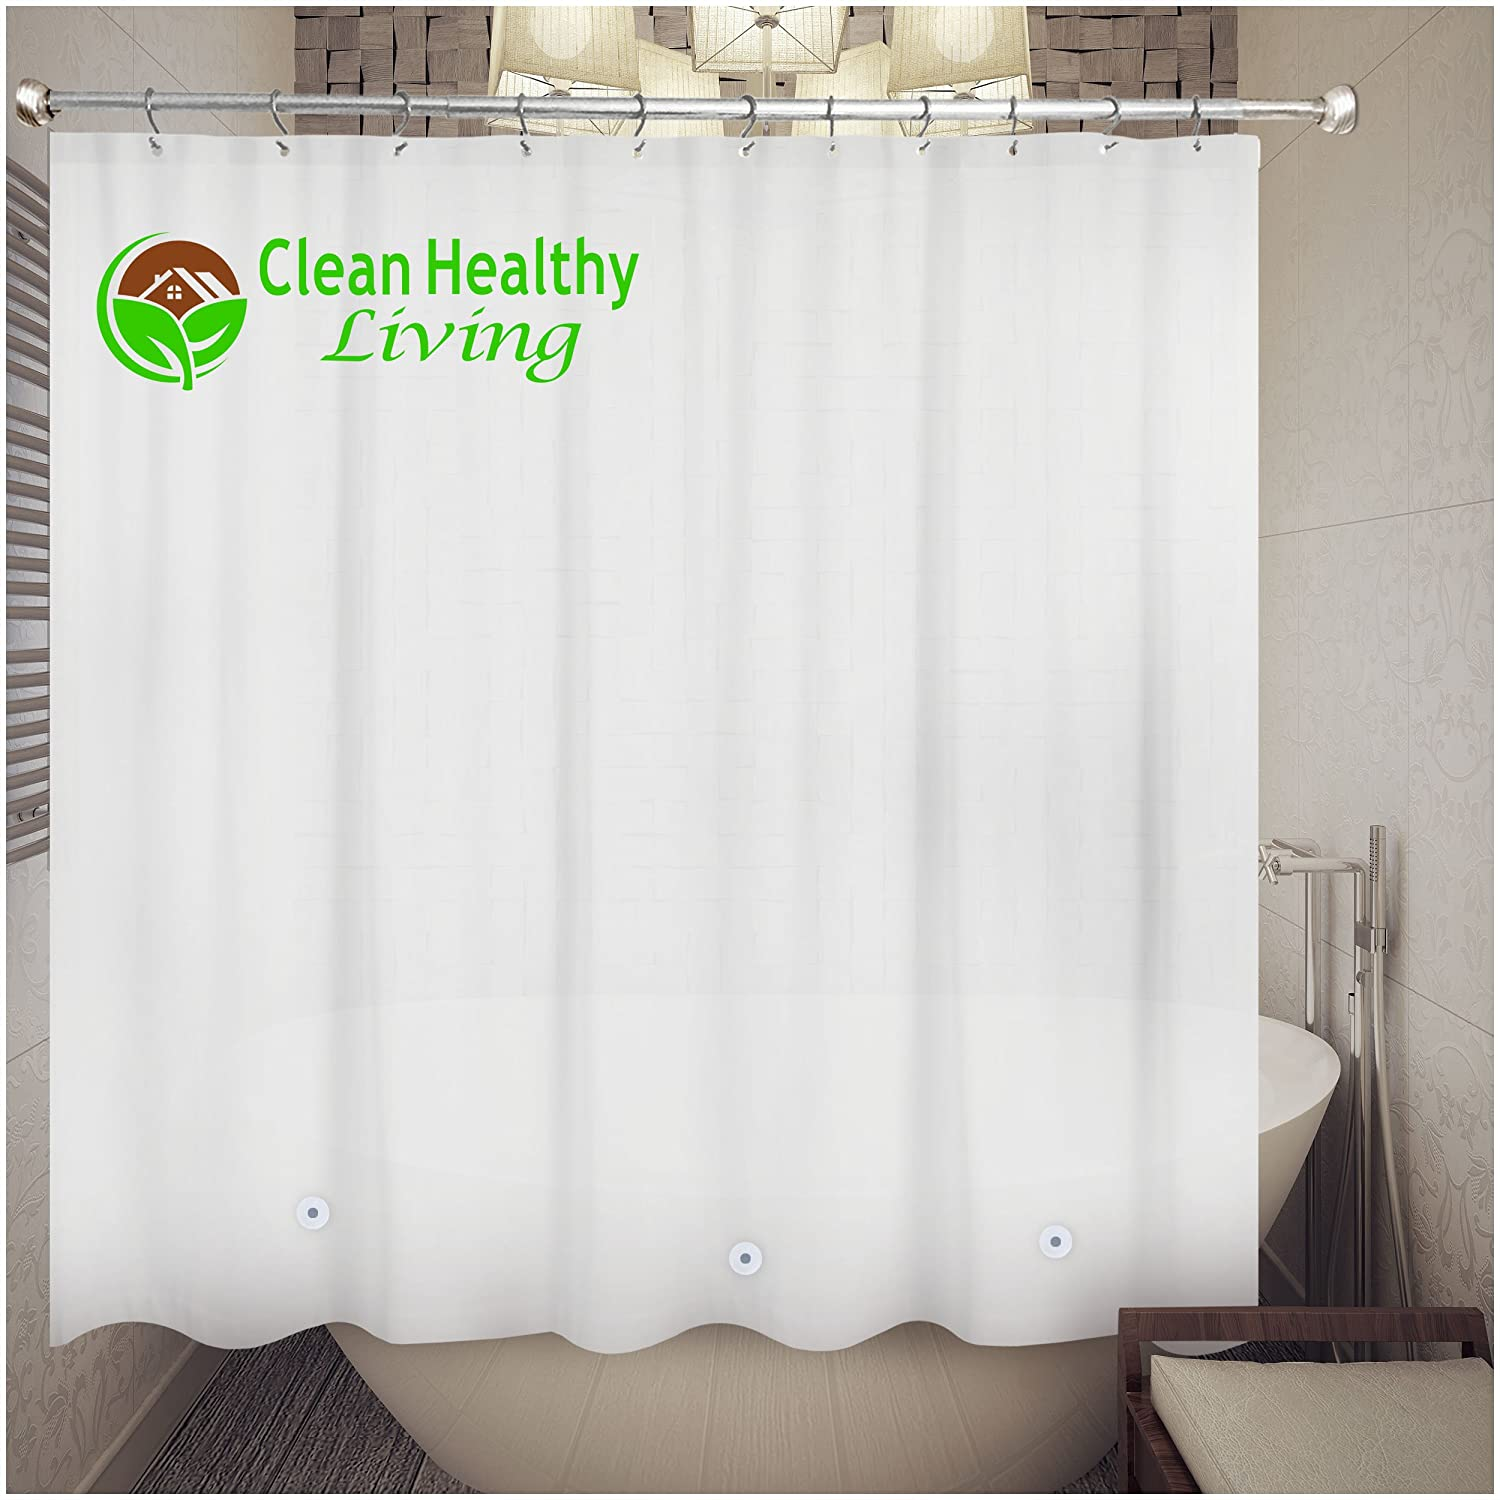 Amazon Clean Healthy Living Heavy Duty Extra Long PEVA Shower Liner Curtain Odorless Mildew Resistant With Suction Cups Eco Friendly 70 X 78 In